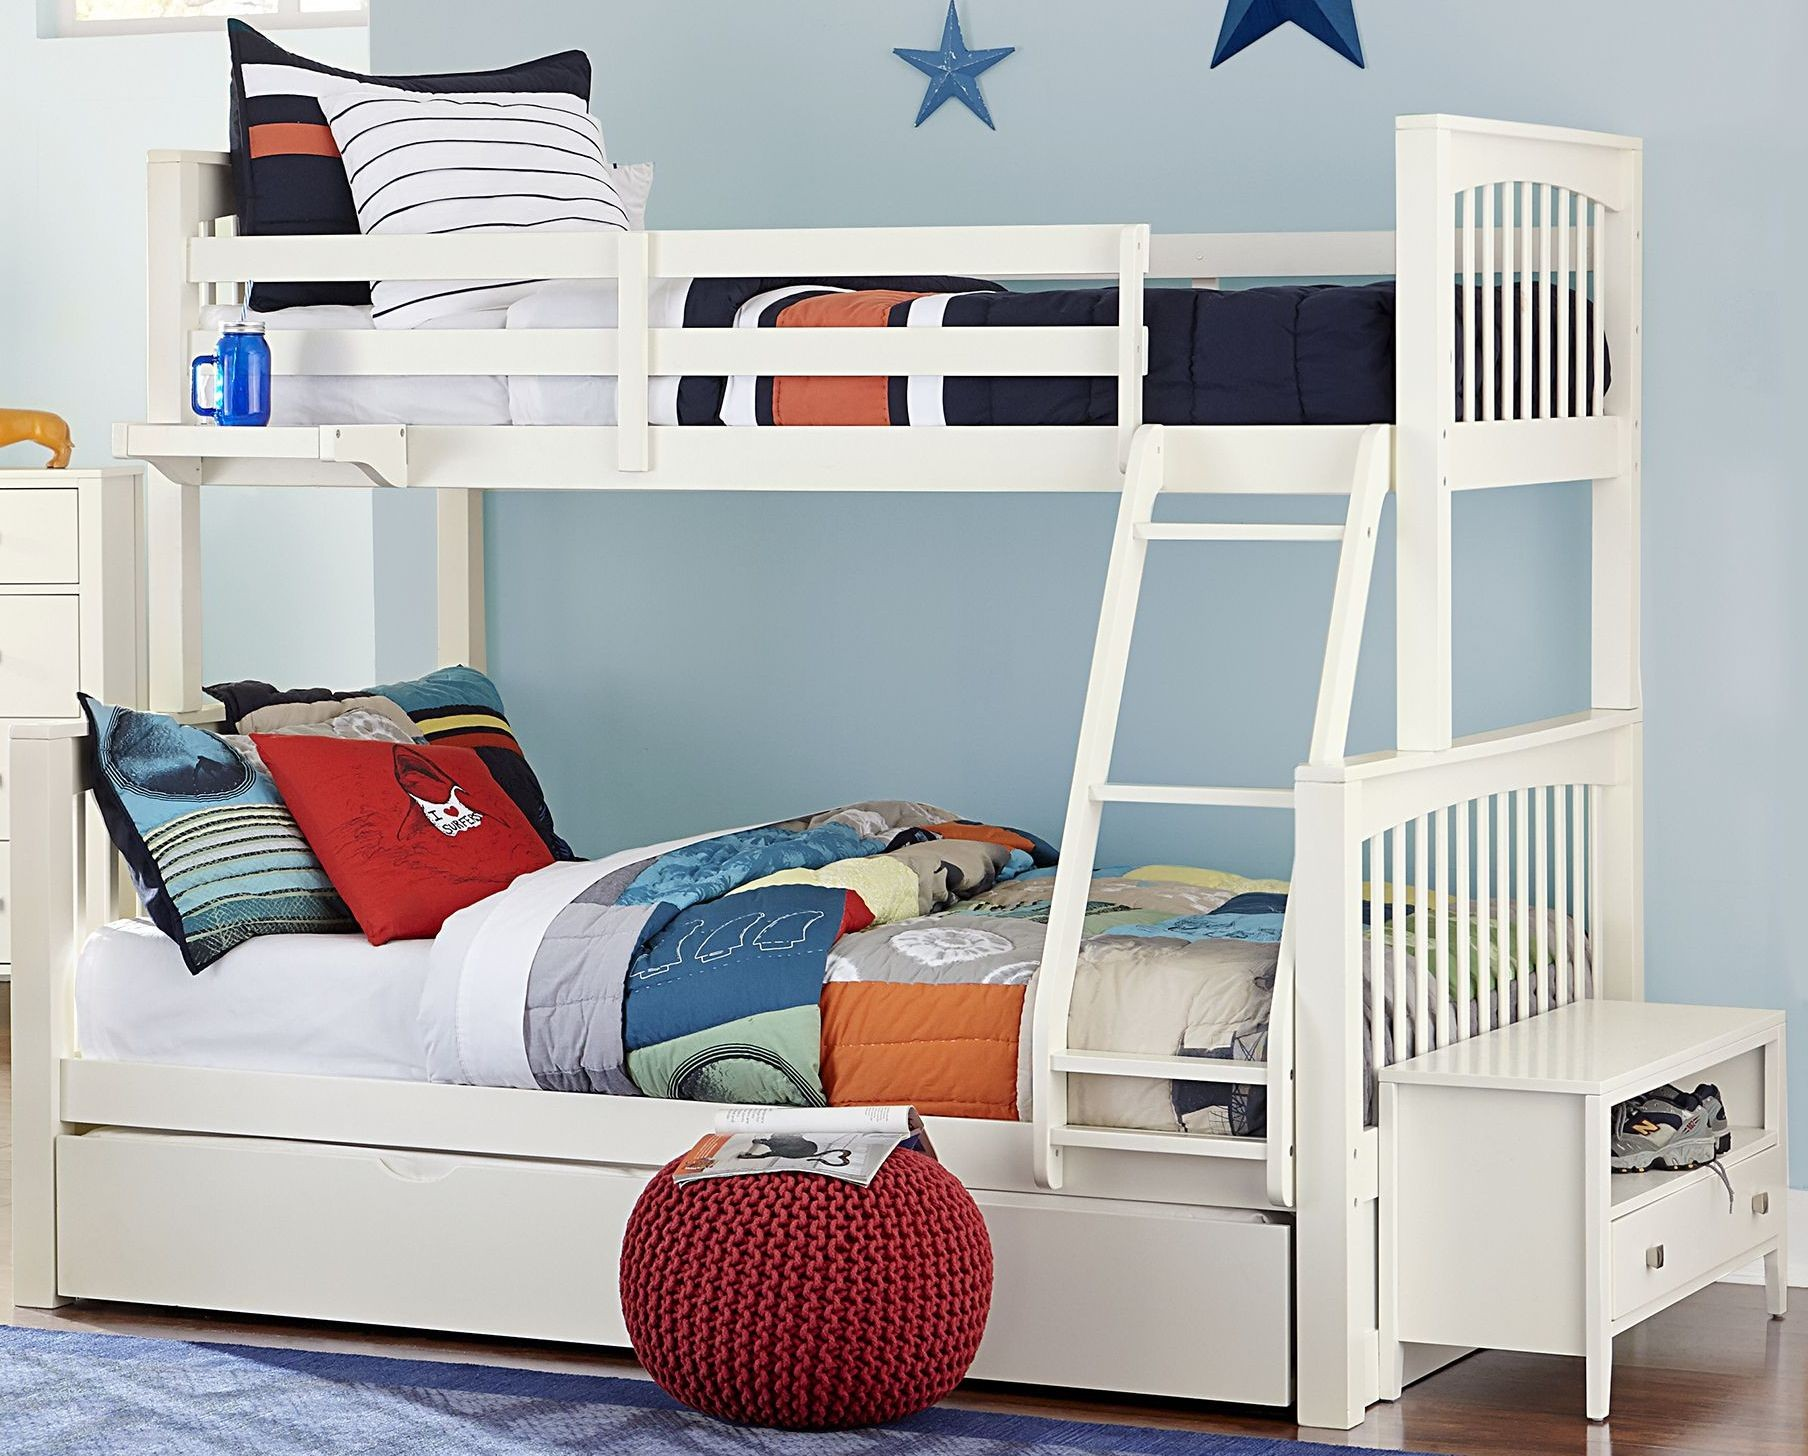 Details About White 3 Piece Storage Drawers Twin Bed Box: Pulse White Twin Over Full Bunk Bed With Trundle From NE